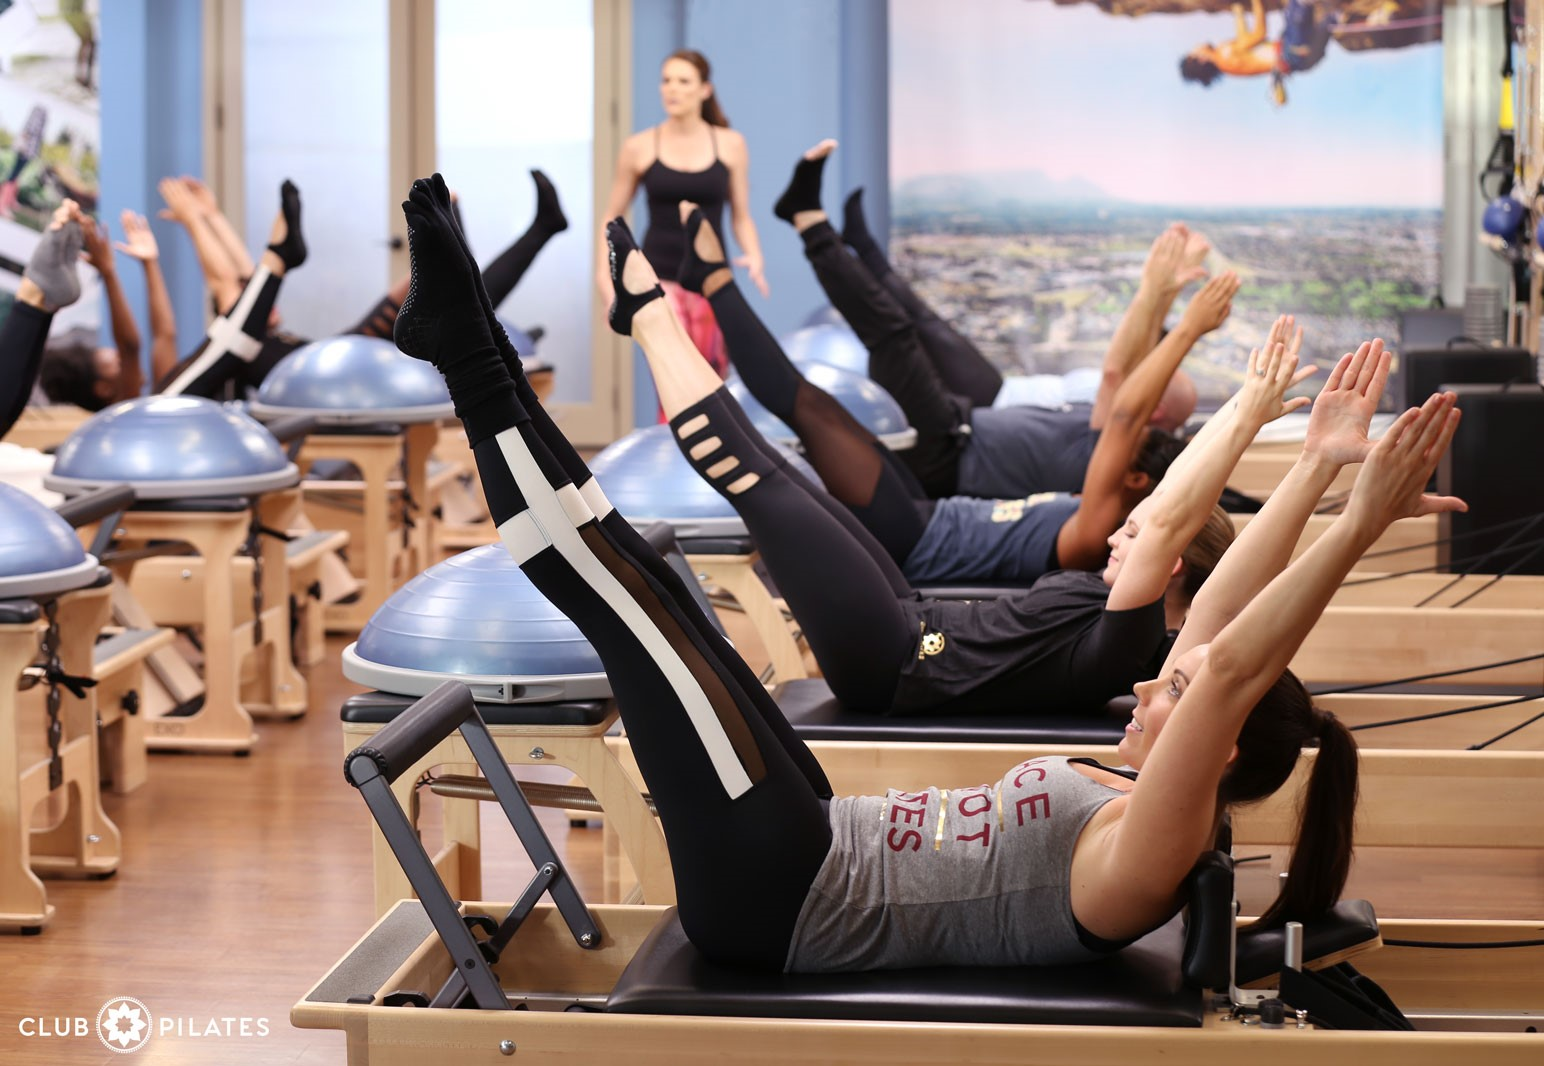 Club Pilates Photo 1.jpg